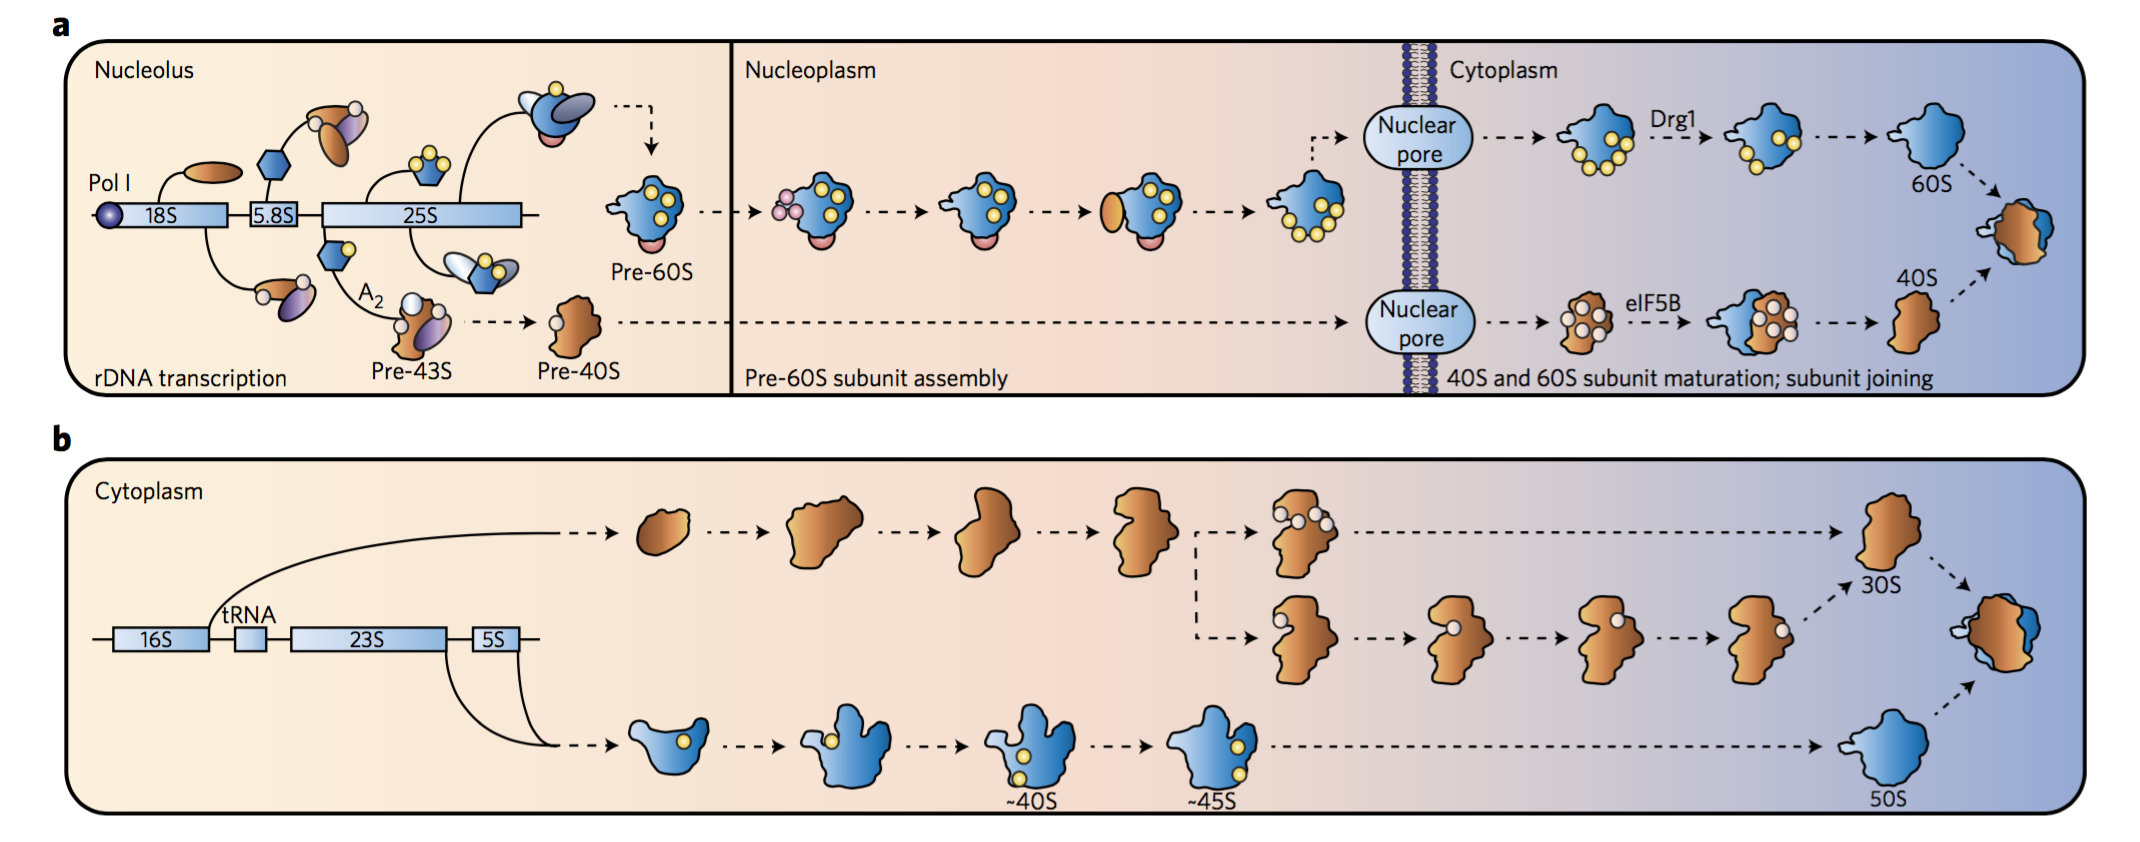 Simplified overview of ribosome biogenesis.   (  a  ) In yeast, ribosome biogenesis initiates with transcription of 18S, 5.8S and 25S rRNA by RNA polymerase I (Pol I). 5S rRNA, transcribed by RNA polymerase III, is omitted for clarity. Co-transcriptional assembly and modification of the pre-43S particle occurs until the emergence of the A  2   RNA cleavage site, at which time the pre-43S particle is released and transcription continues through the 60S subunit rRNA genes. The 40S and 60S subunits are then independently assembled with the assistance of ~200 assembly factors. Upon export of the pre-ribosomal particles into the cytoplasm, mature 60S subunits bind pre-40S particles in an eIF5B-dependent pre-translation quality control checkpoint before final 40S maturation. Representative ribosome assembly factors are depicted with pink, yellow and purple circles. (  b  ) Bacterial ribosome biogenesis begins with transcription of 16S, 23S and 5S rRNA as a single transcript that is then cleaved by a series of RNases to release pre-30S and pre-50S particles. As in yeast, rRNA transcripts are co-transcriptionally assembled and modified (omitted for clarity). 30S and 50S subunits are subsequently modified by ~60 biogenesis factors and mature through multiple parallel assembly pathways before translation initiation. Unlike eukaryotic ribosome biogenesis, this process in bacteria does not necessitate a nuclear export event, and a pre-translation quality control checkpoint has yet to be observed. Representative ribosome assembly factors are depicted with pink and yellow circles.